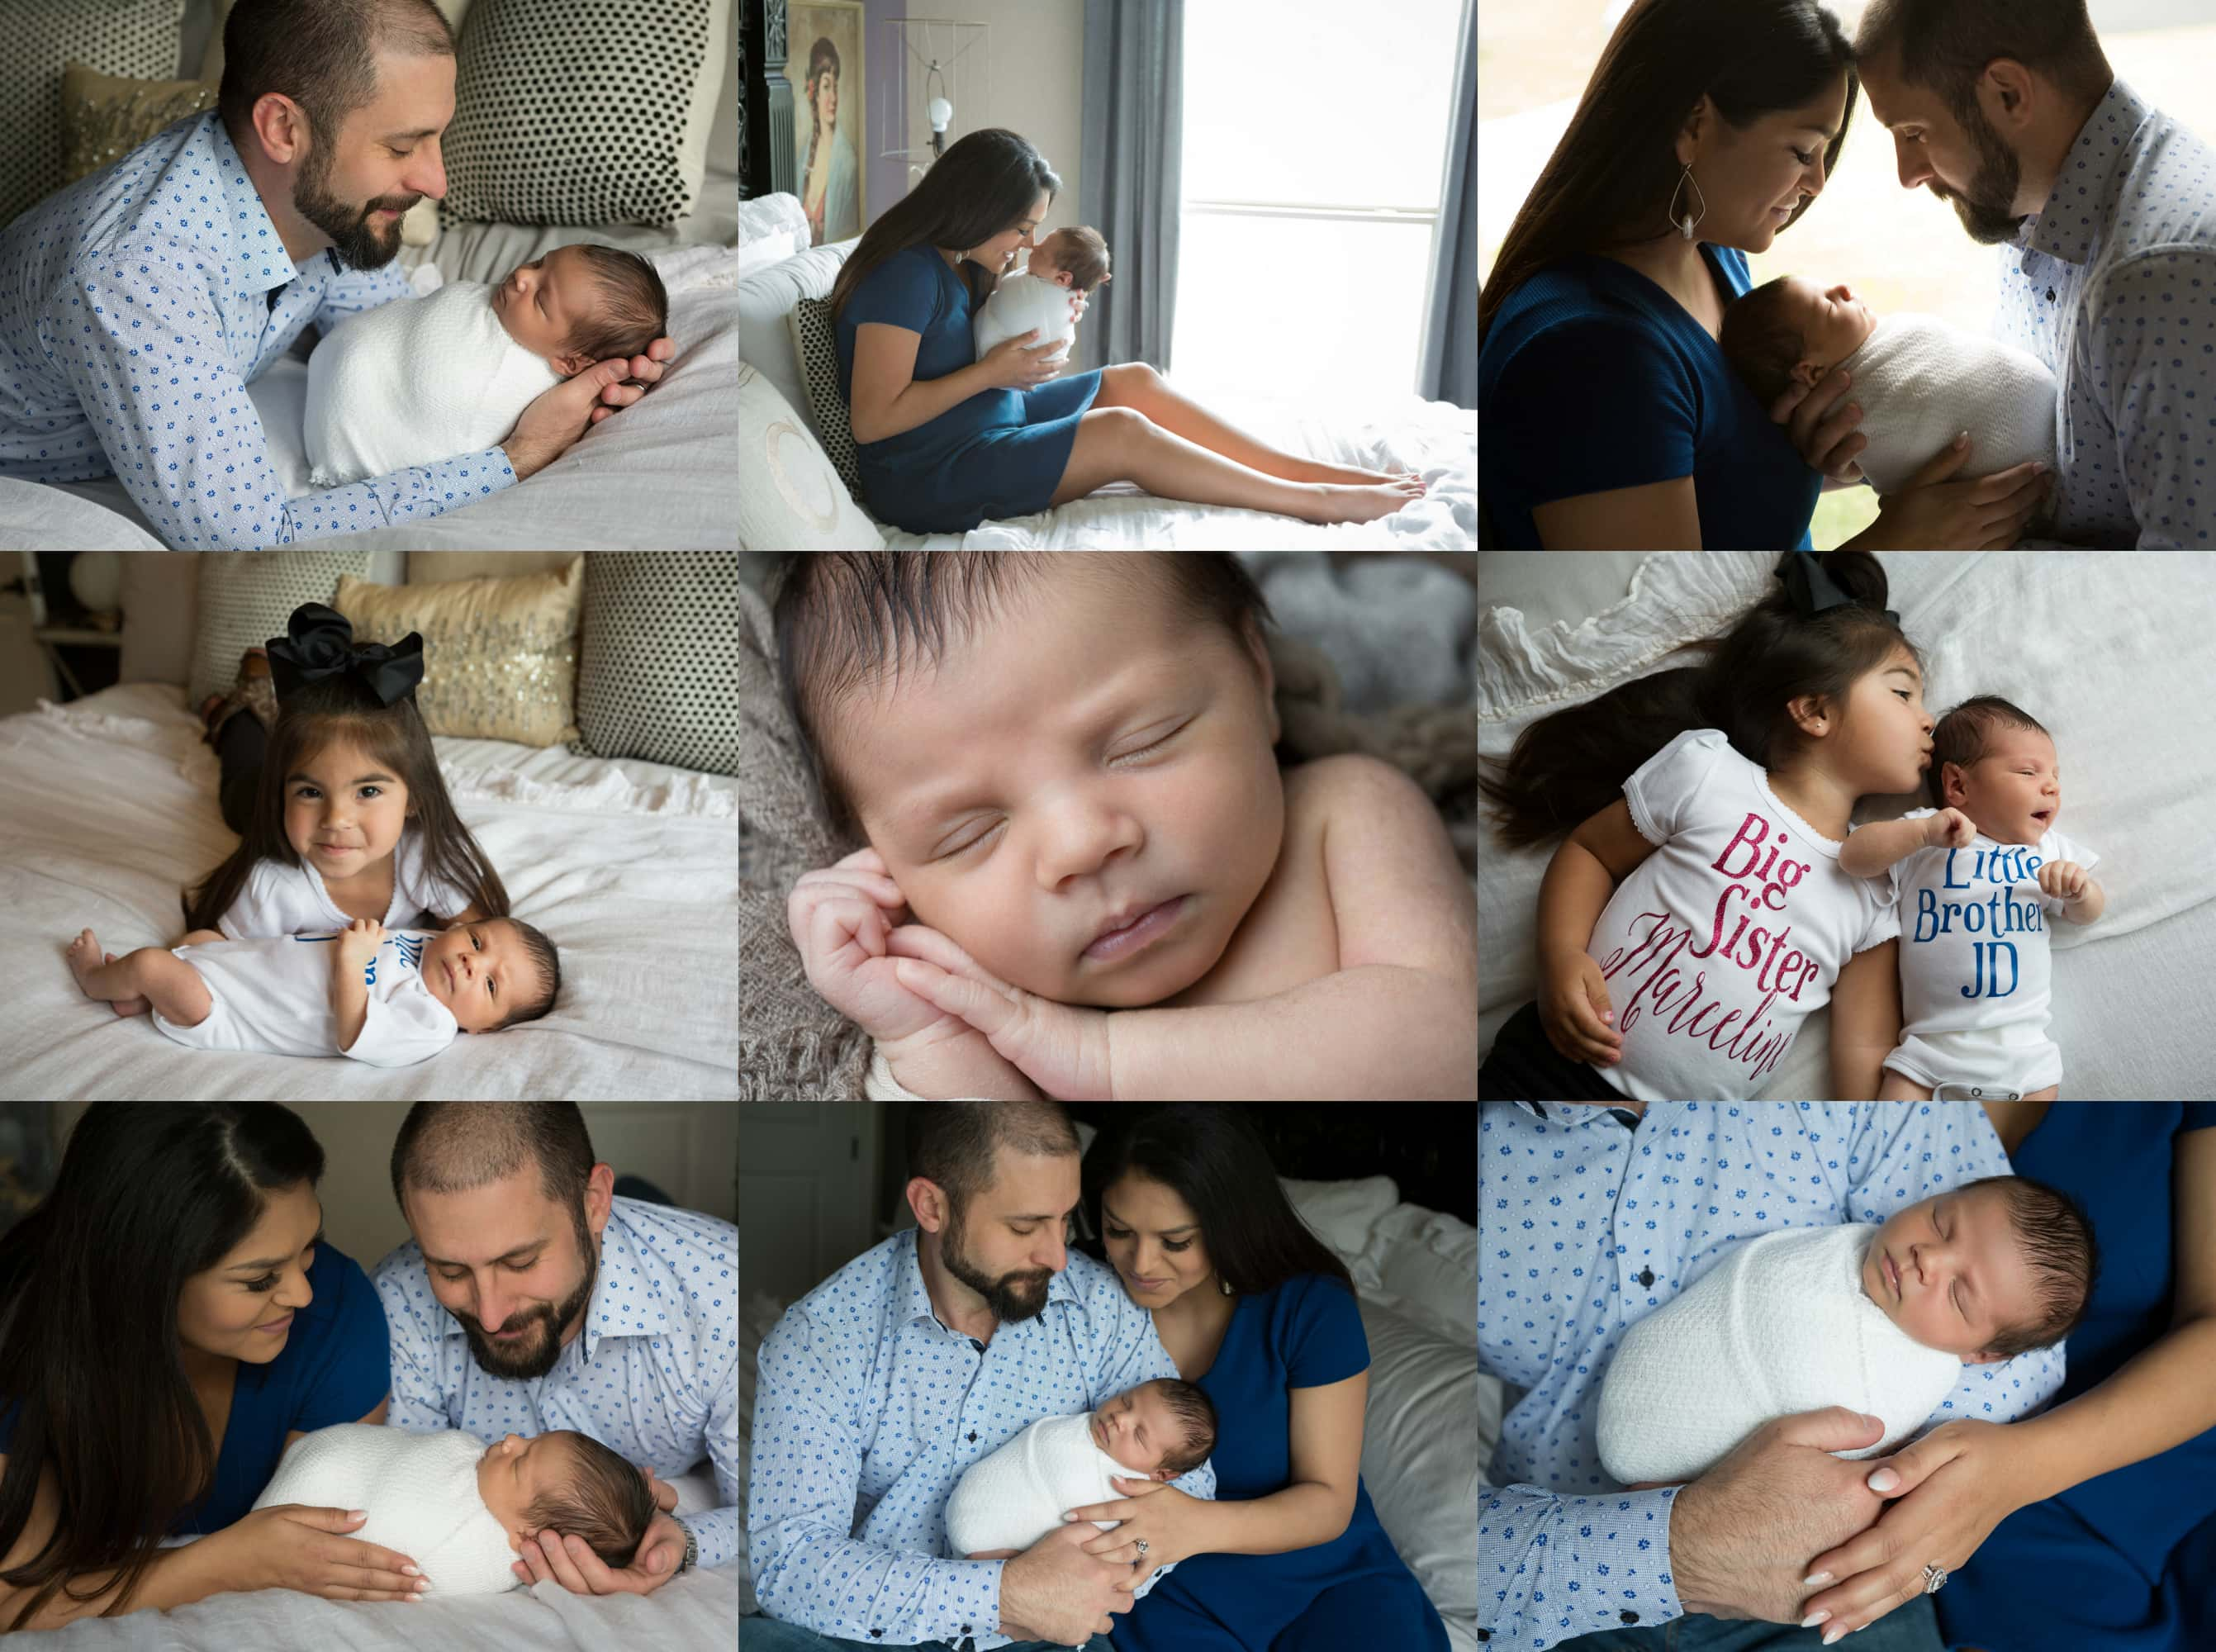 newborn boy at home in South Texas, baby boy sleeping during newborn photos at home